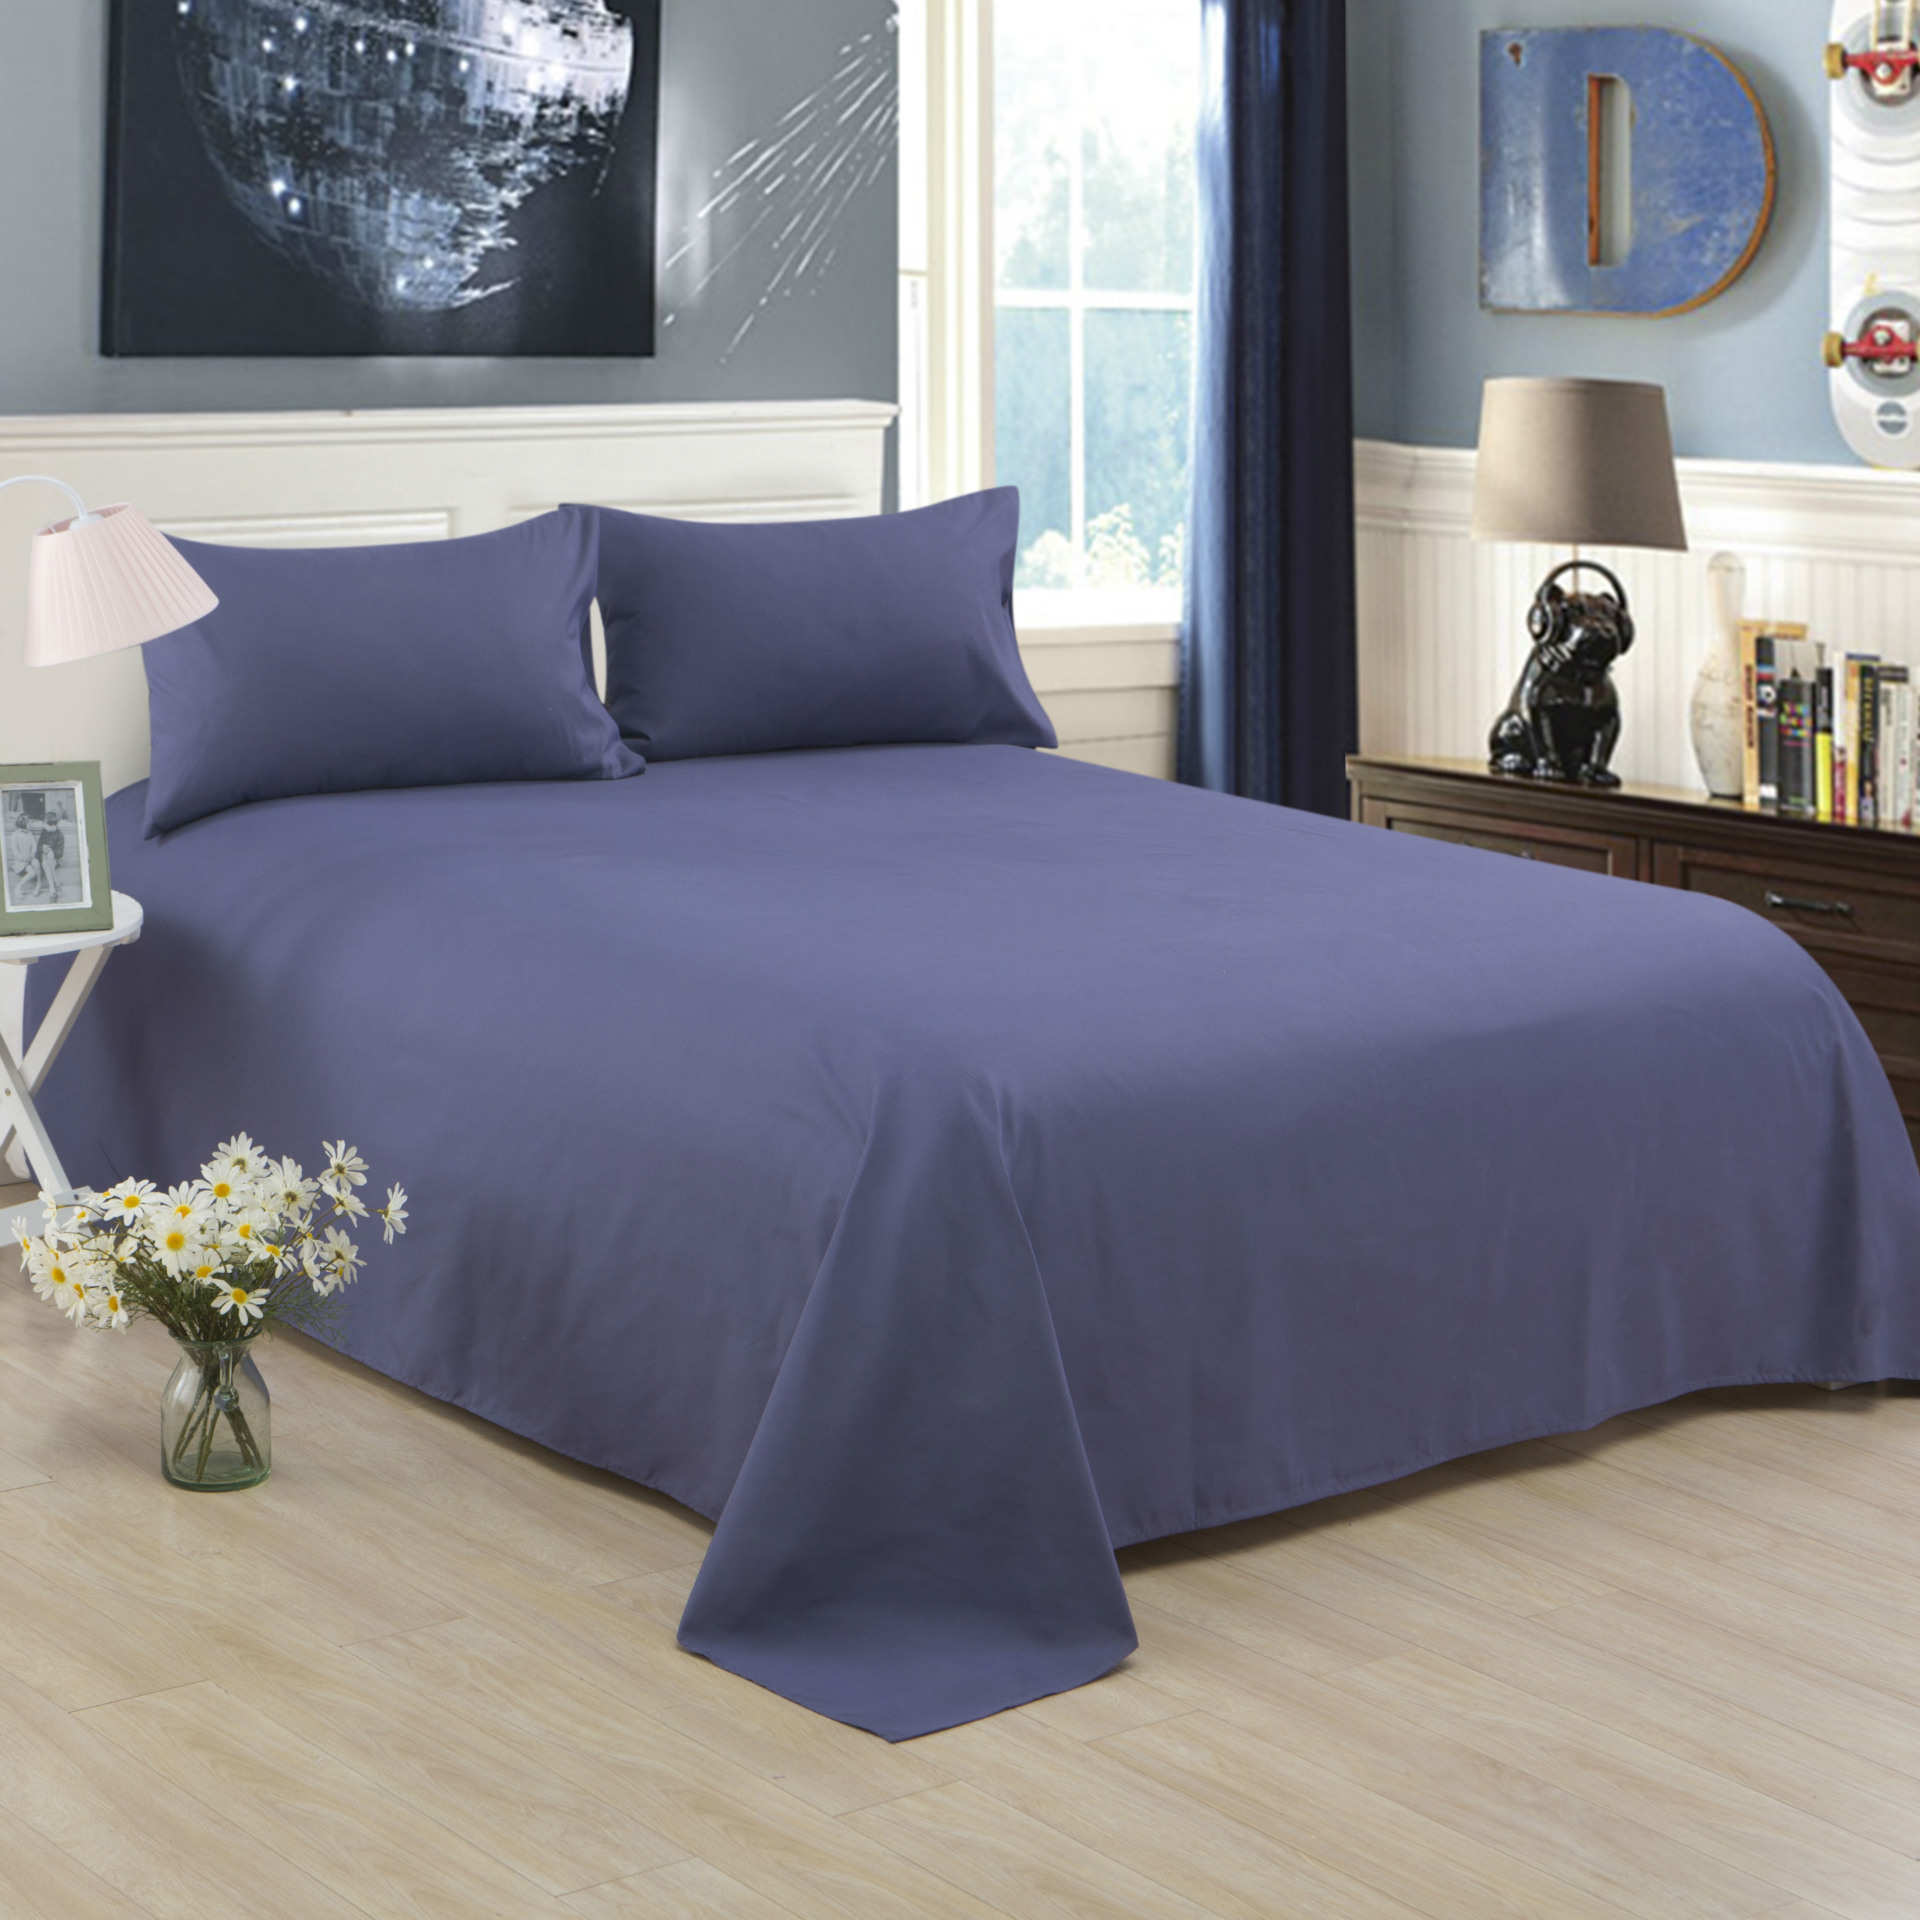 ropa de cama Solid color polyester cotton bed sheet hotel home soft brushed flat sheet queen bed cover not included pillowcase 18